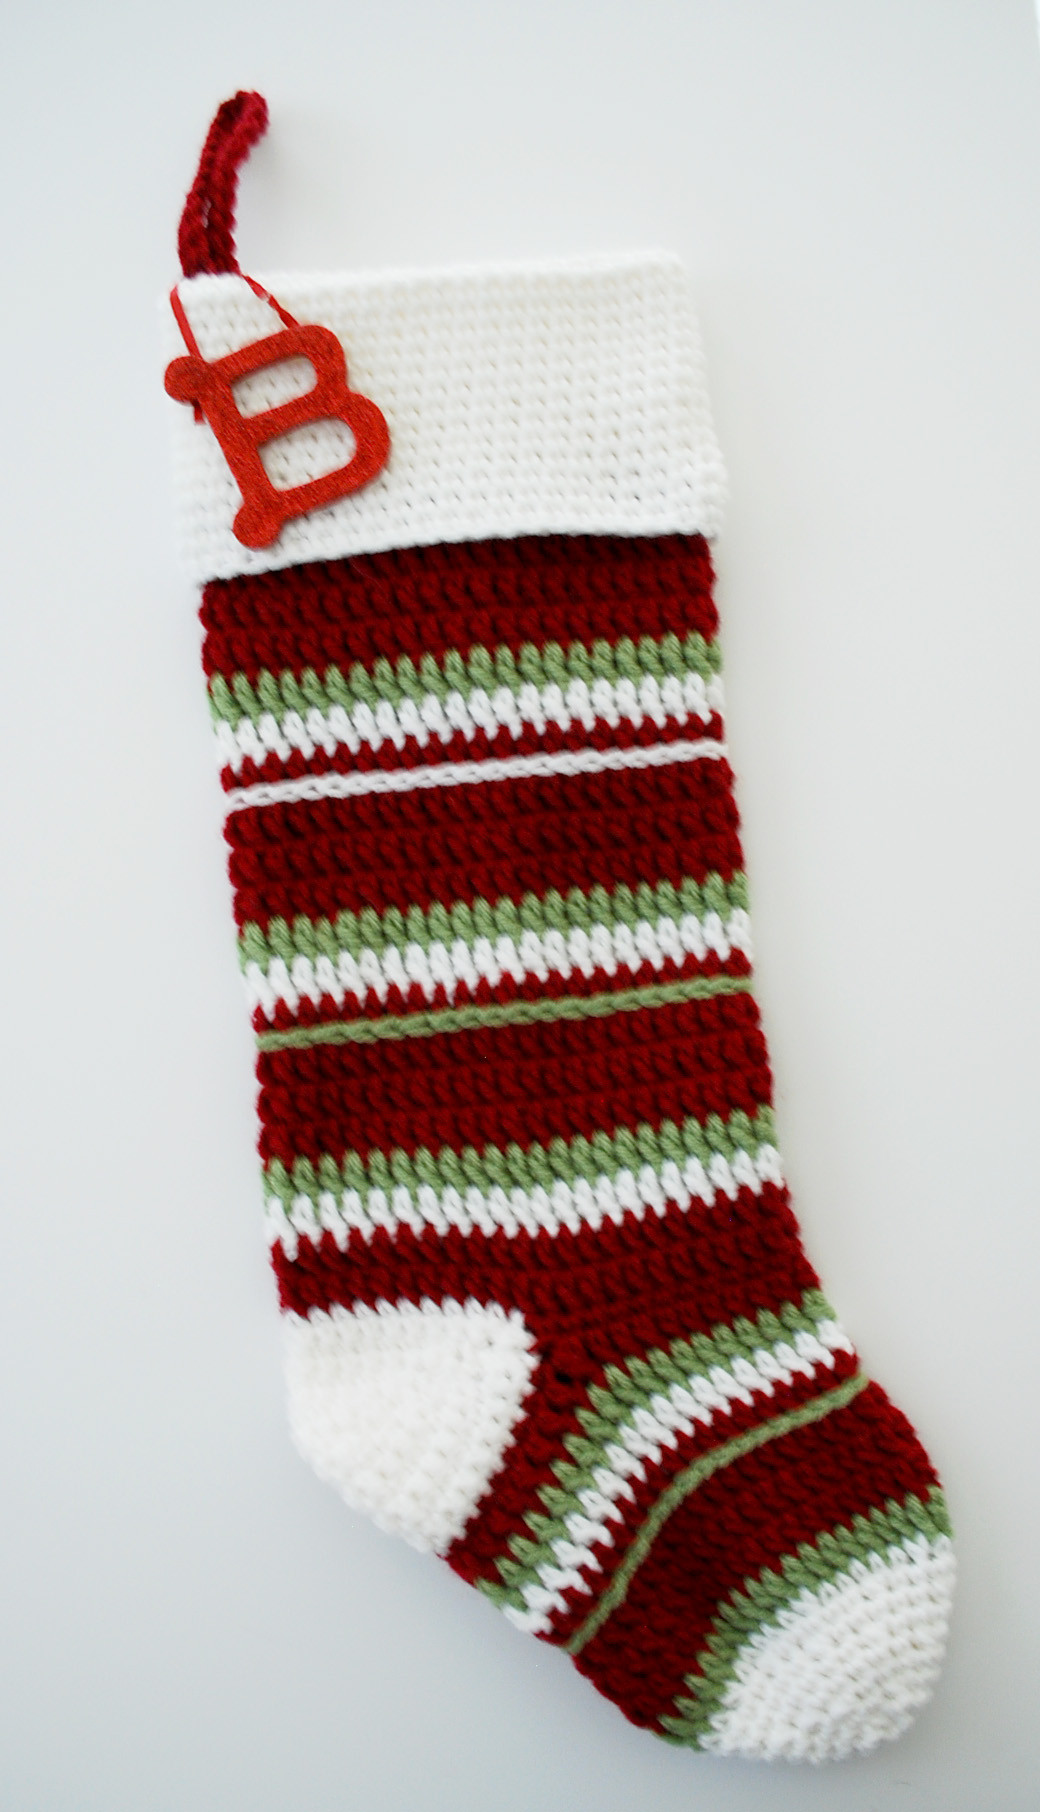 Best Of Crochet Christmas Stockings B Hooked Crochet Crochet Pattern for Christmas Stocking Of Lovely Christmas Stockings Crochet Pattern for Christmas Stocking